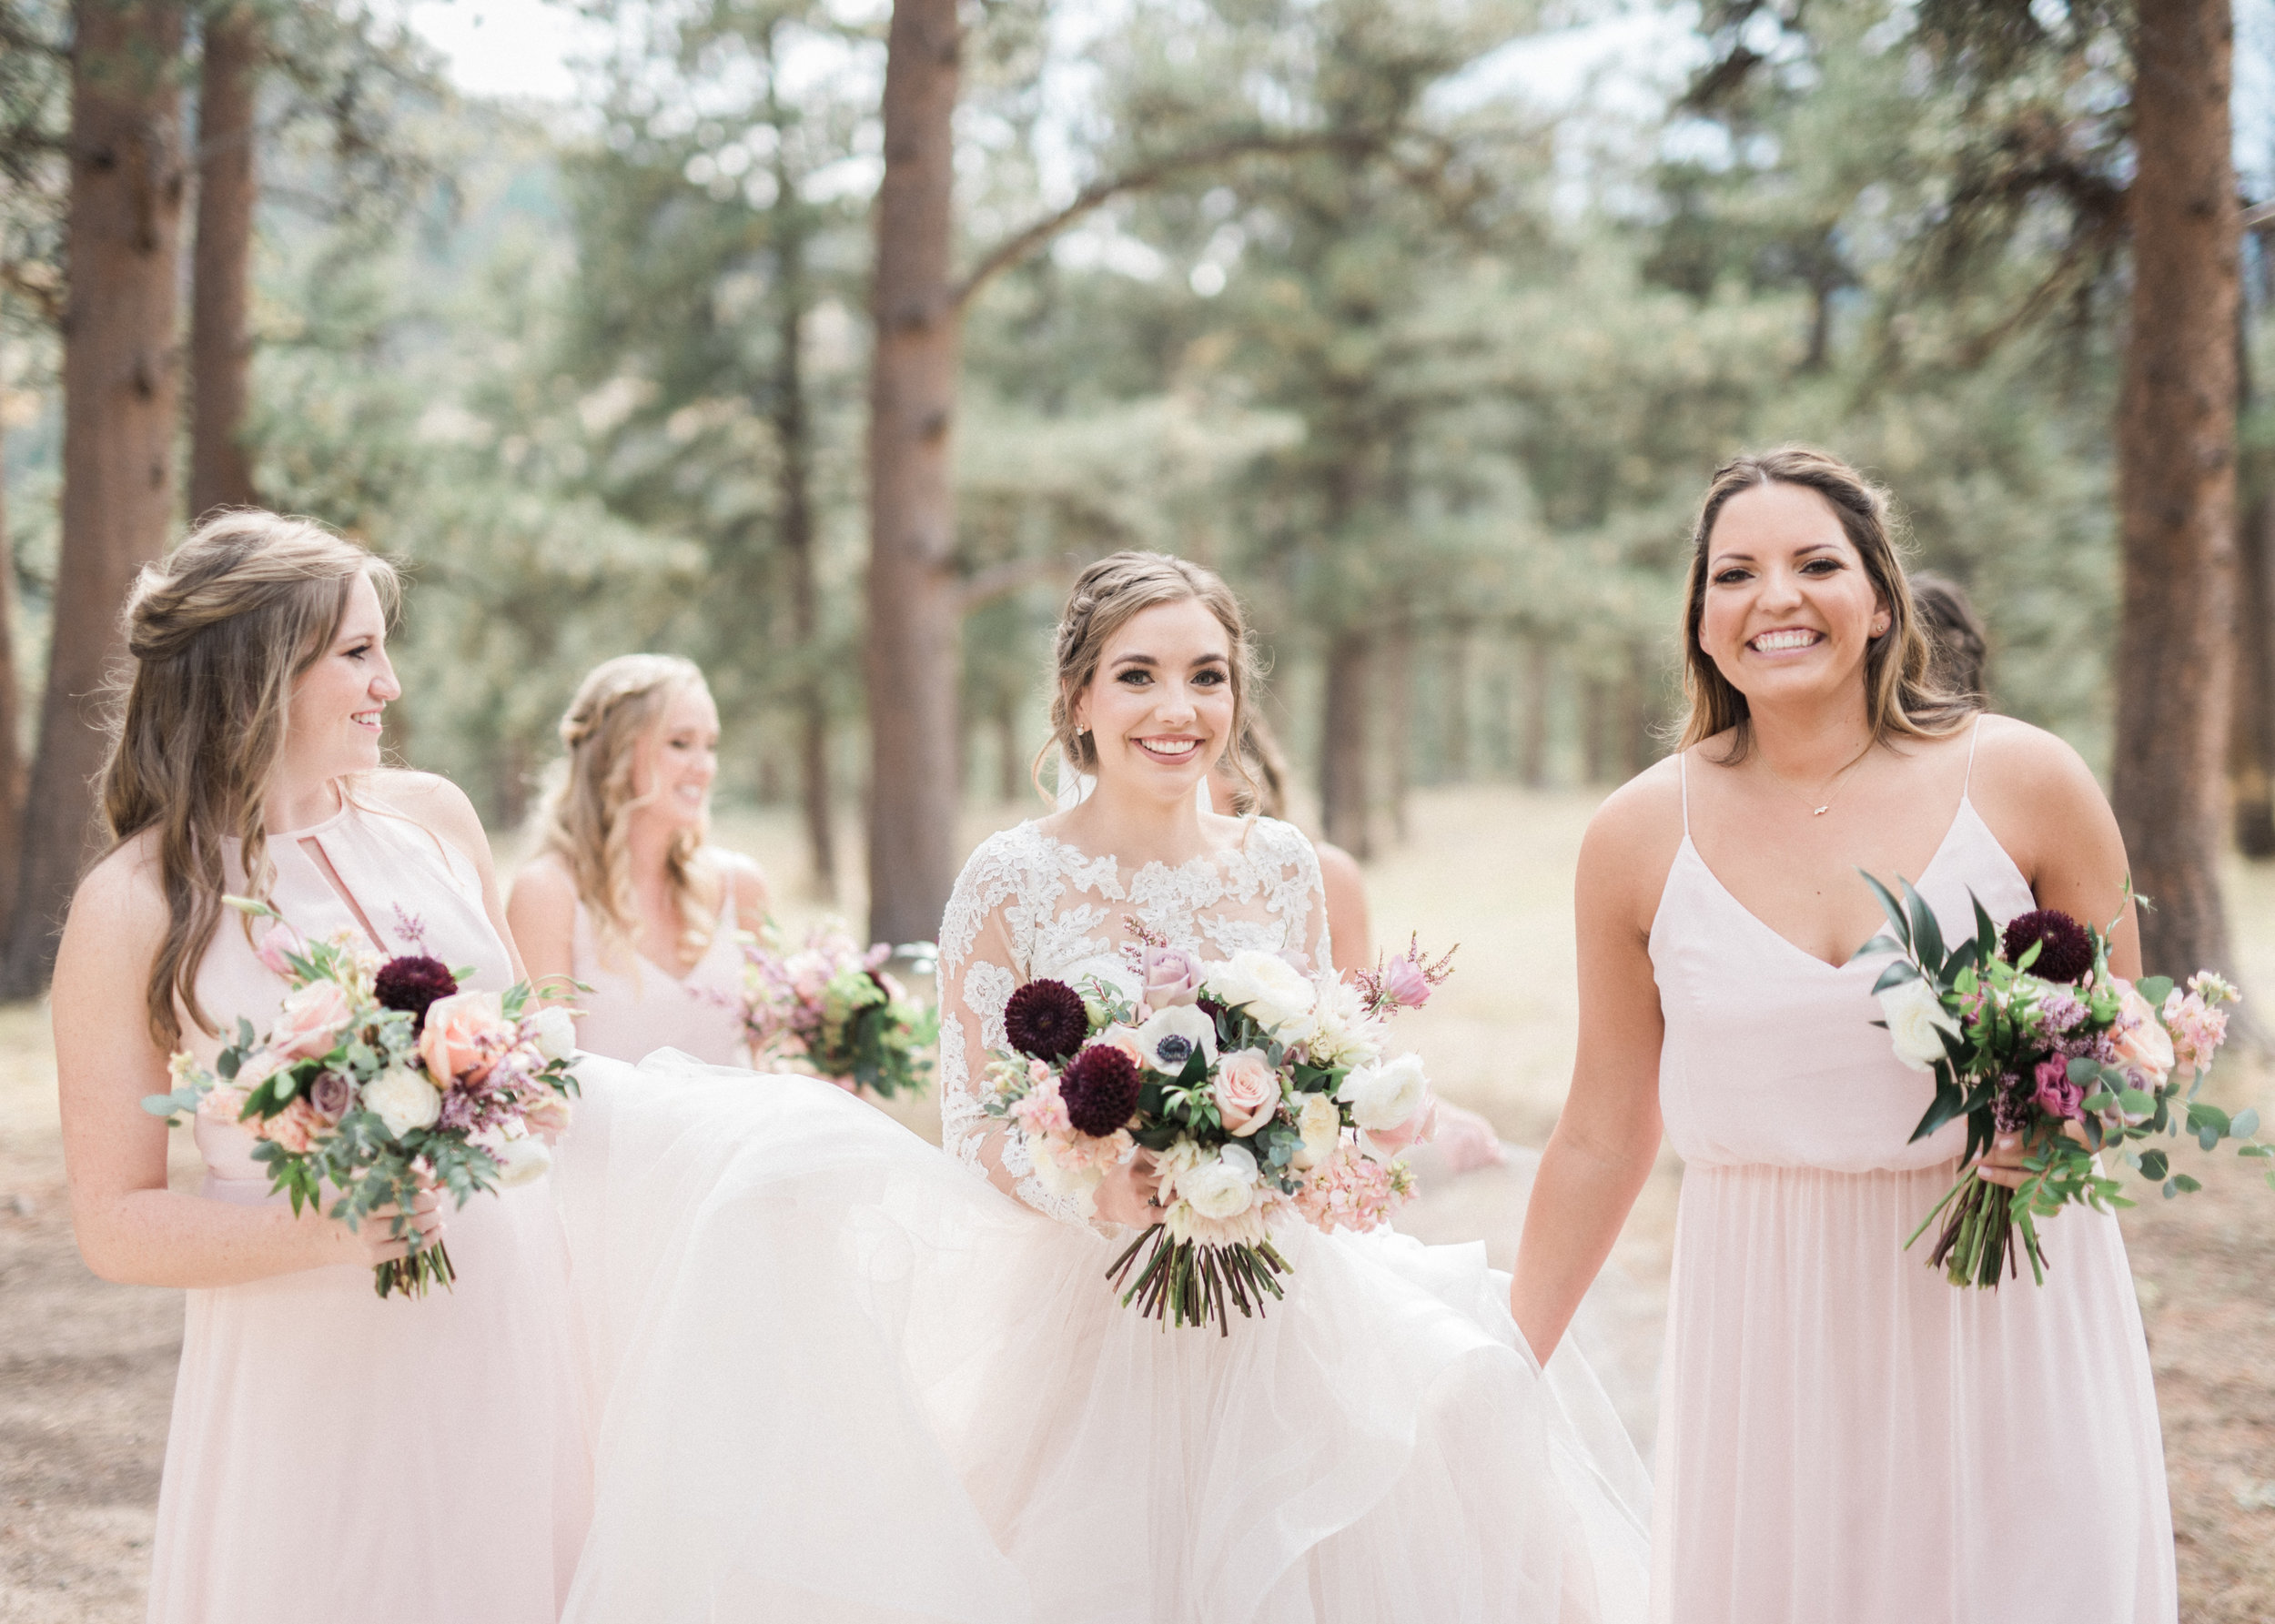 Flowers by Lace and Lilies, first look, wedding flowers, bridal bouquet, boutonniere, wedding photography, burgundy flowers, eucalyptus